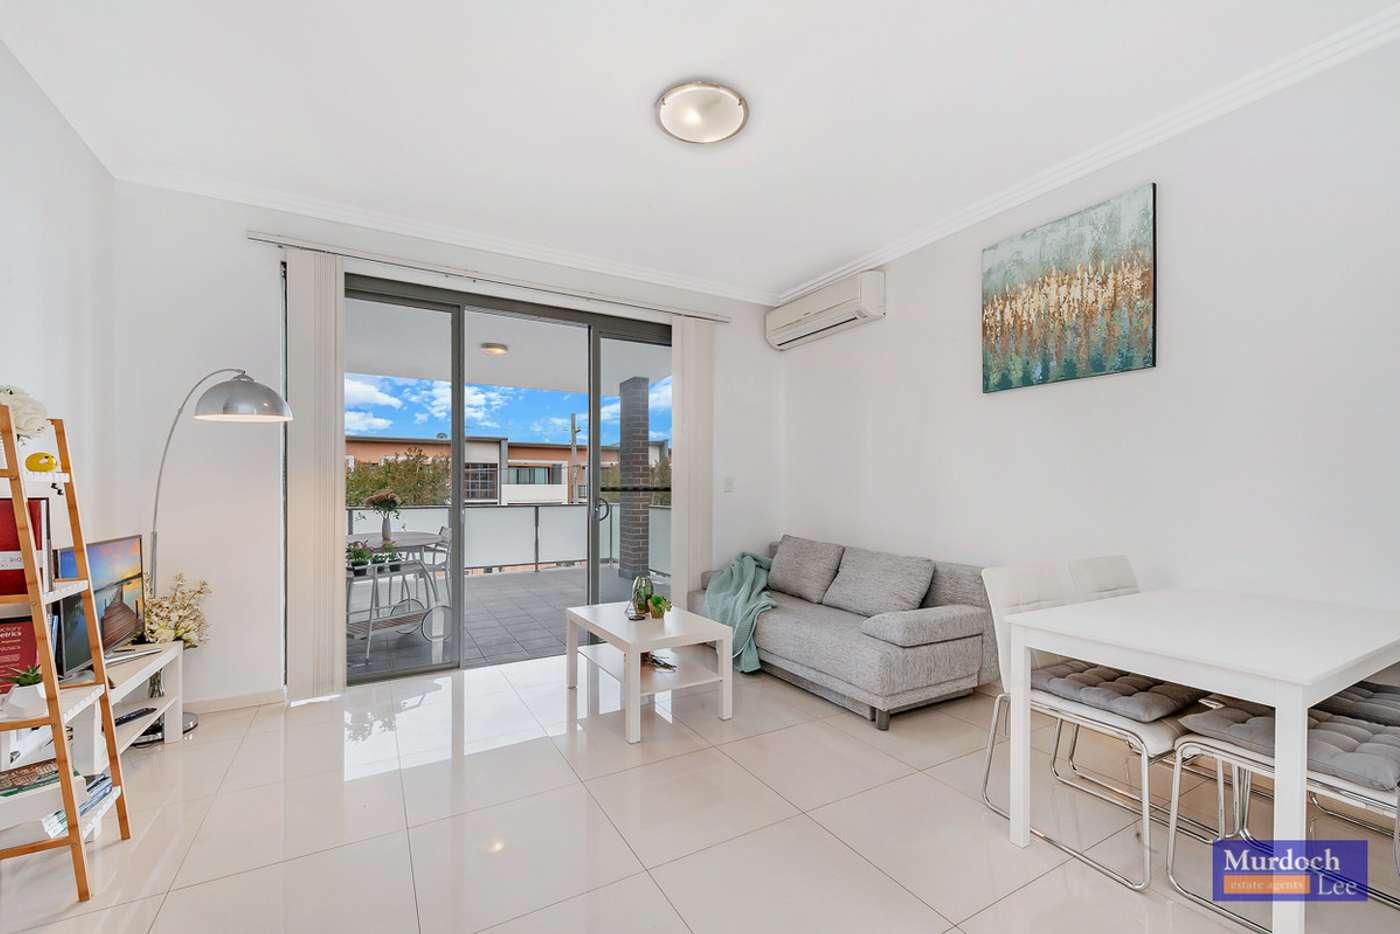 Main view of Homely apartment listing, 6/34-36 Napier Street, Parramatta NSW 2150